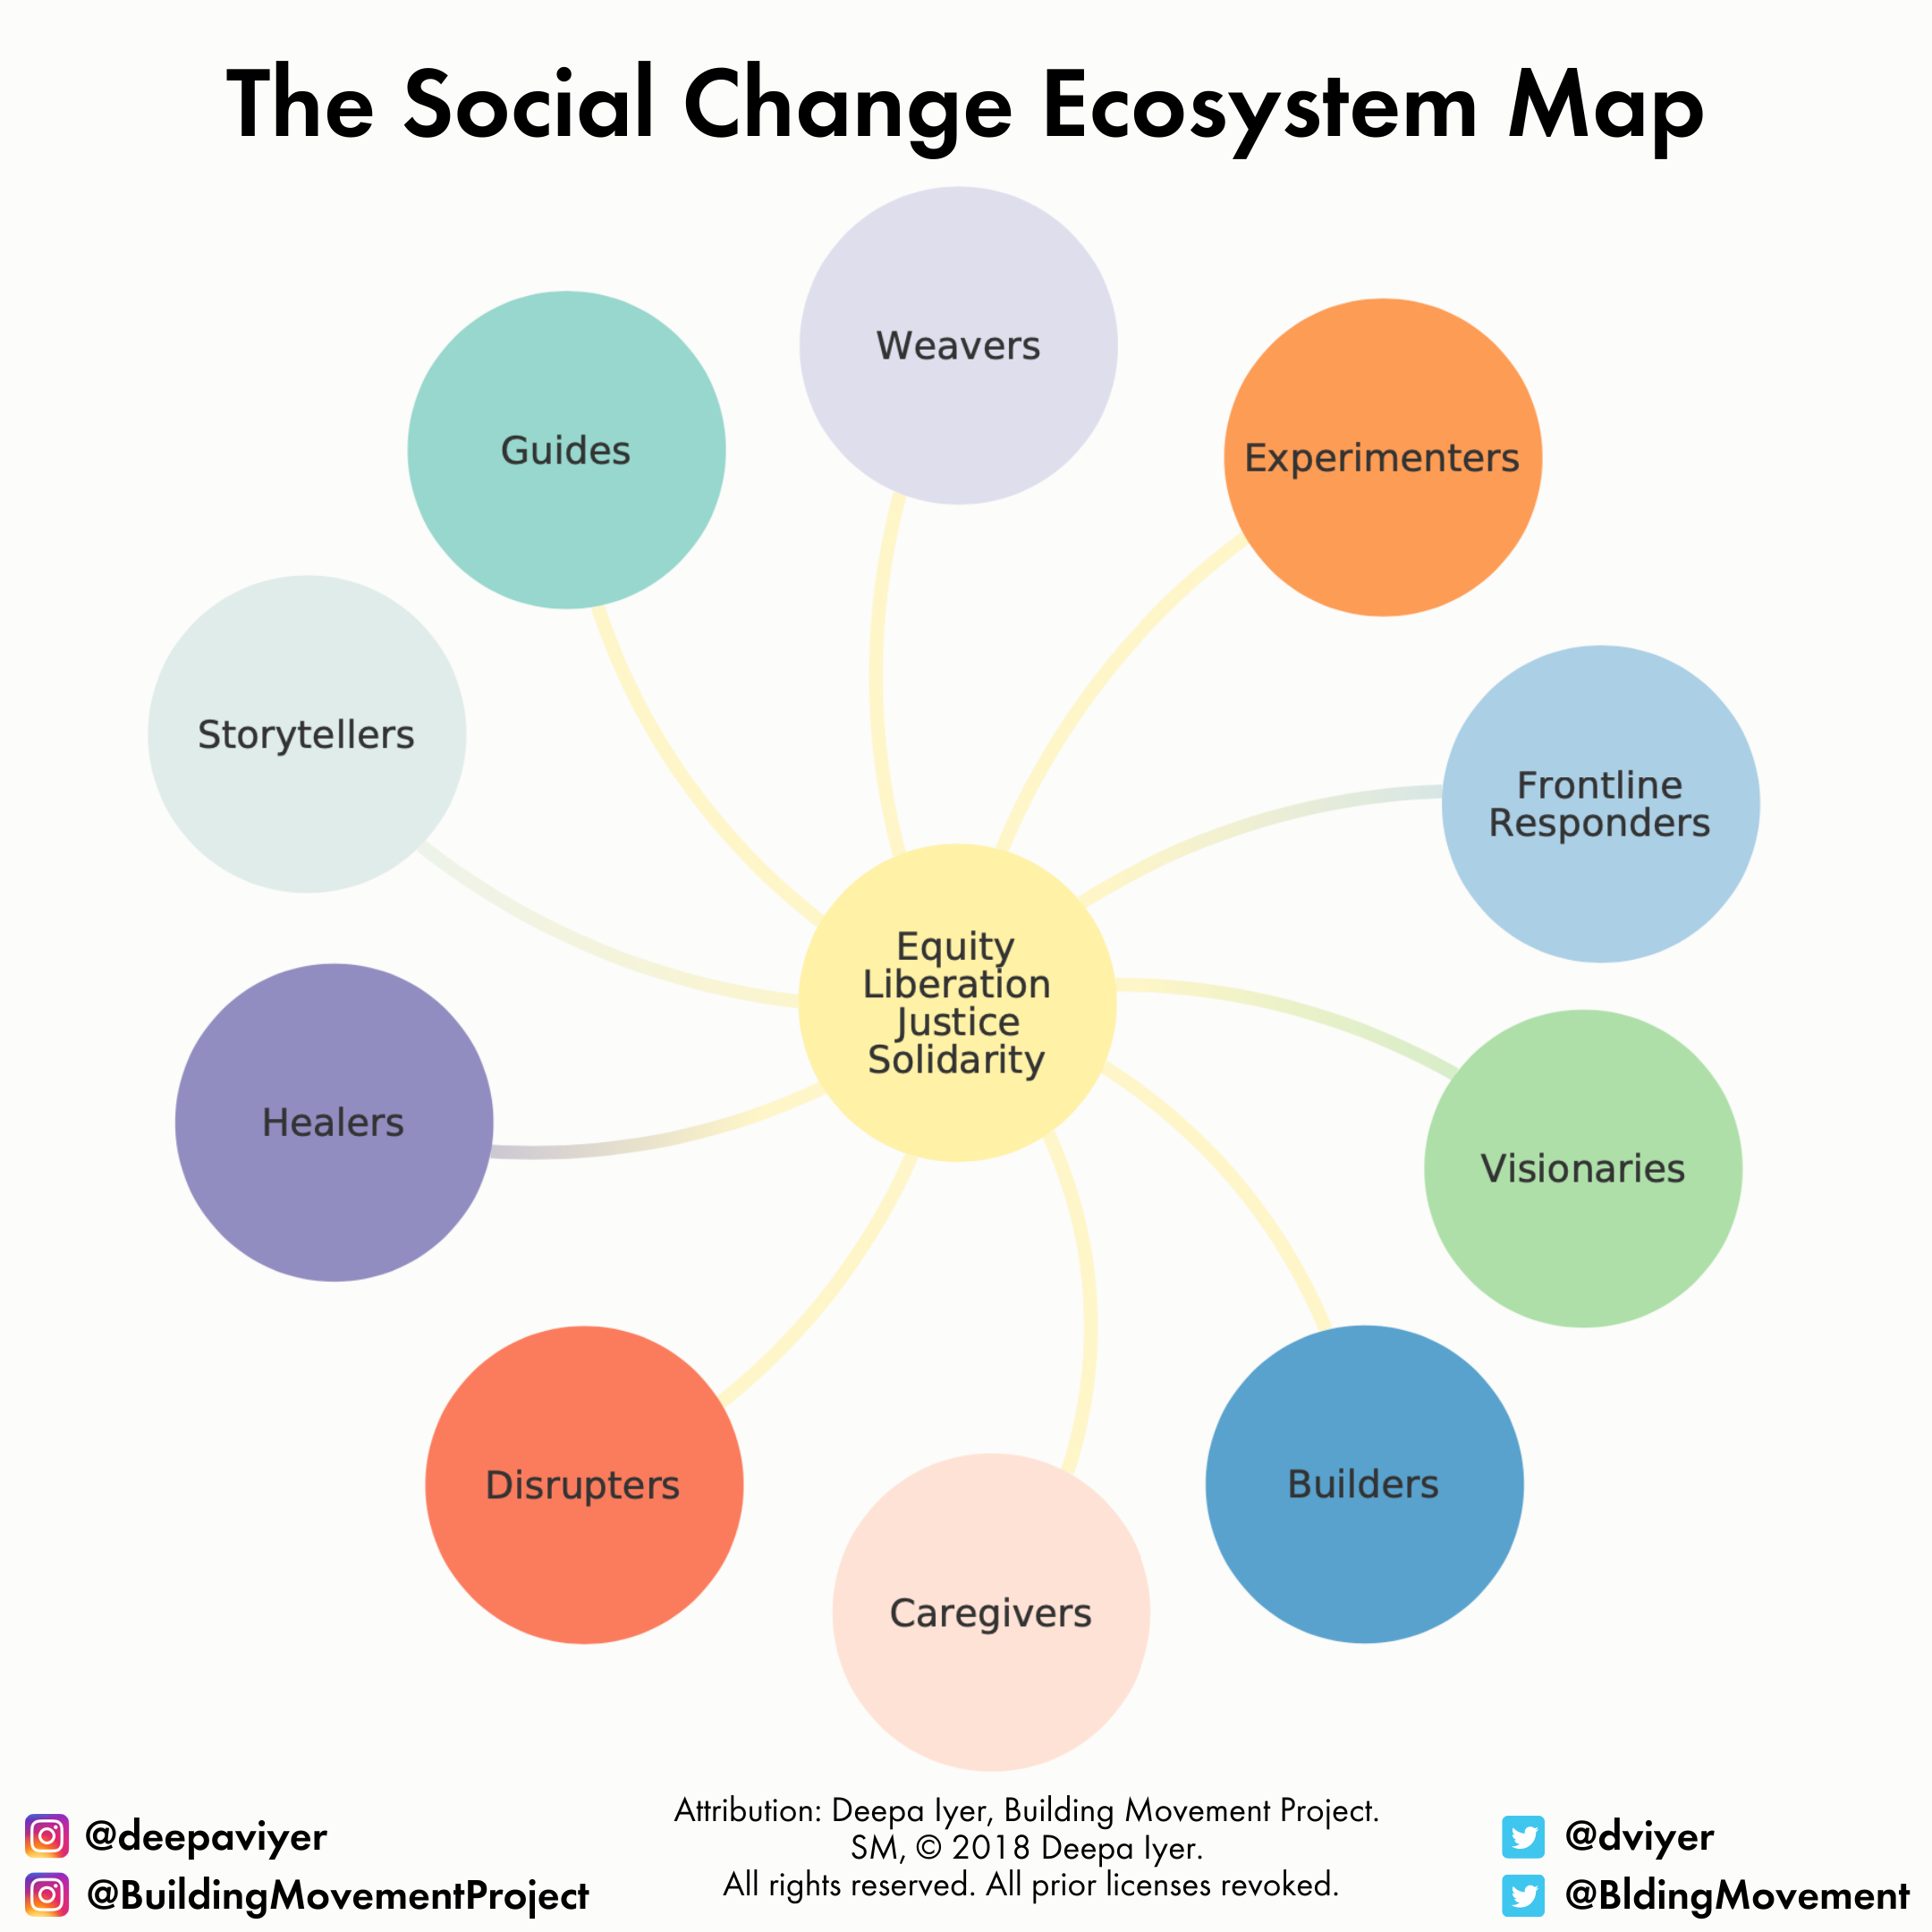 "An image of a ""map"", the text says ""Social Change Ecosystem Roles"", in it there is a central circle that says ""equity, liberation, justice, solididarity"" and around it are multiple circles with roles that work towards that goal, each one connected to the central circle by a flowing line. The external circles, or roles, say: weavers, experimenters, frontline responders, visionaries, builders, caregivers, disrupters, healers, storytellers, and guides."